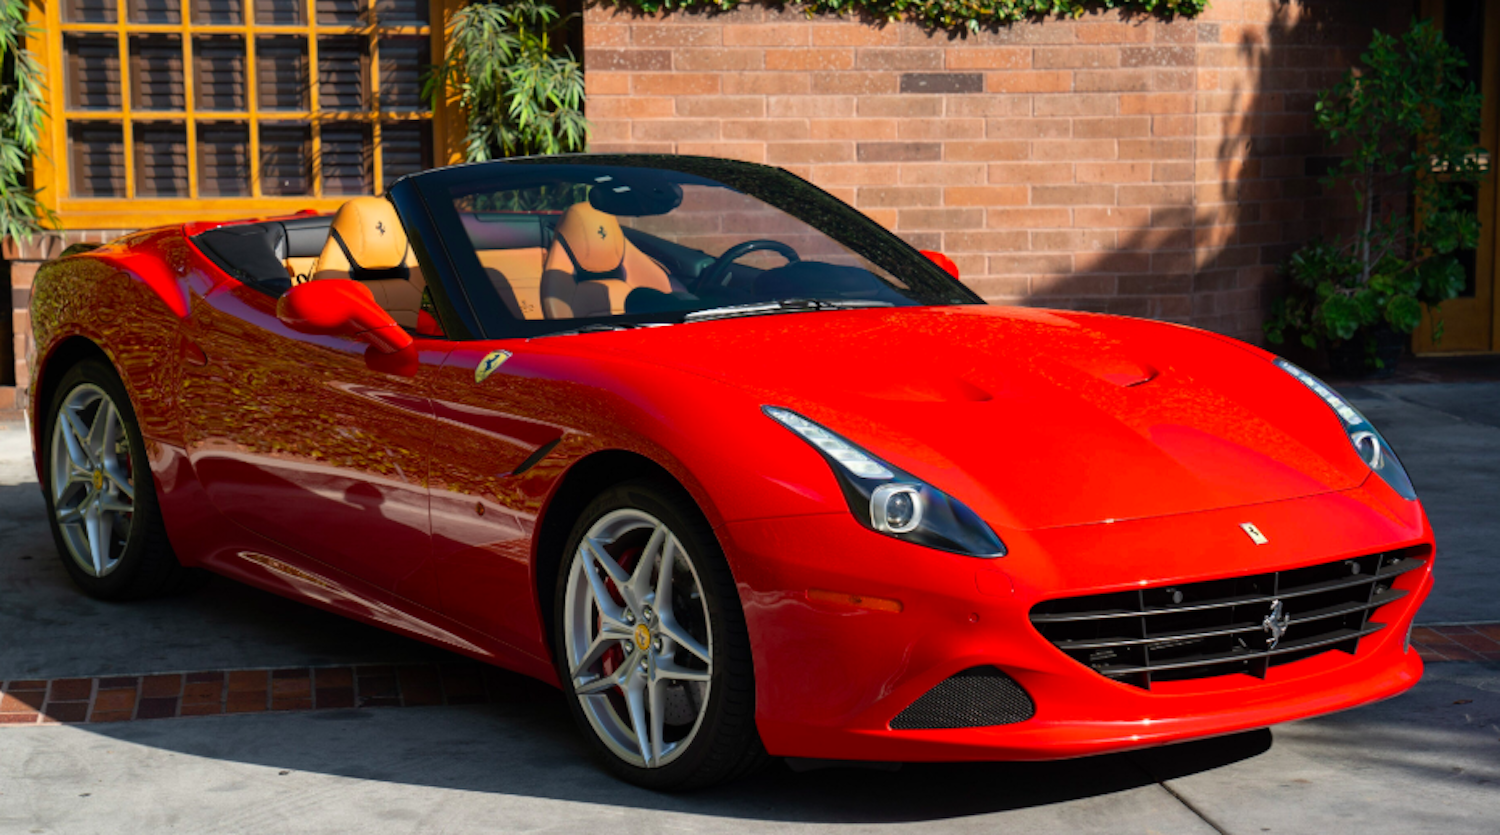 rent exotic car : Ferrari California rental By Exotic-Luxury-Rental.com